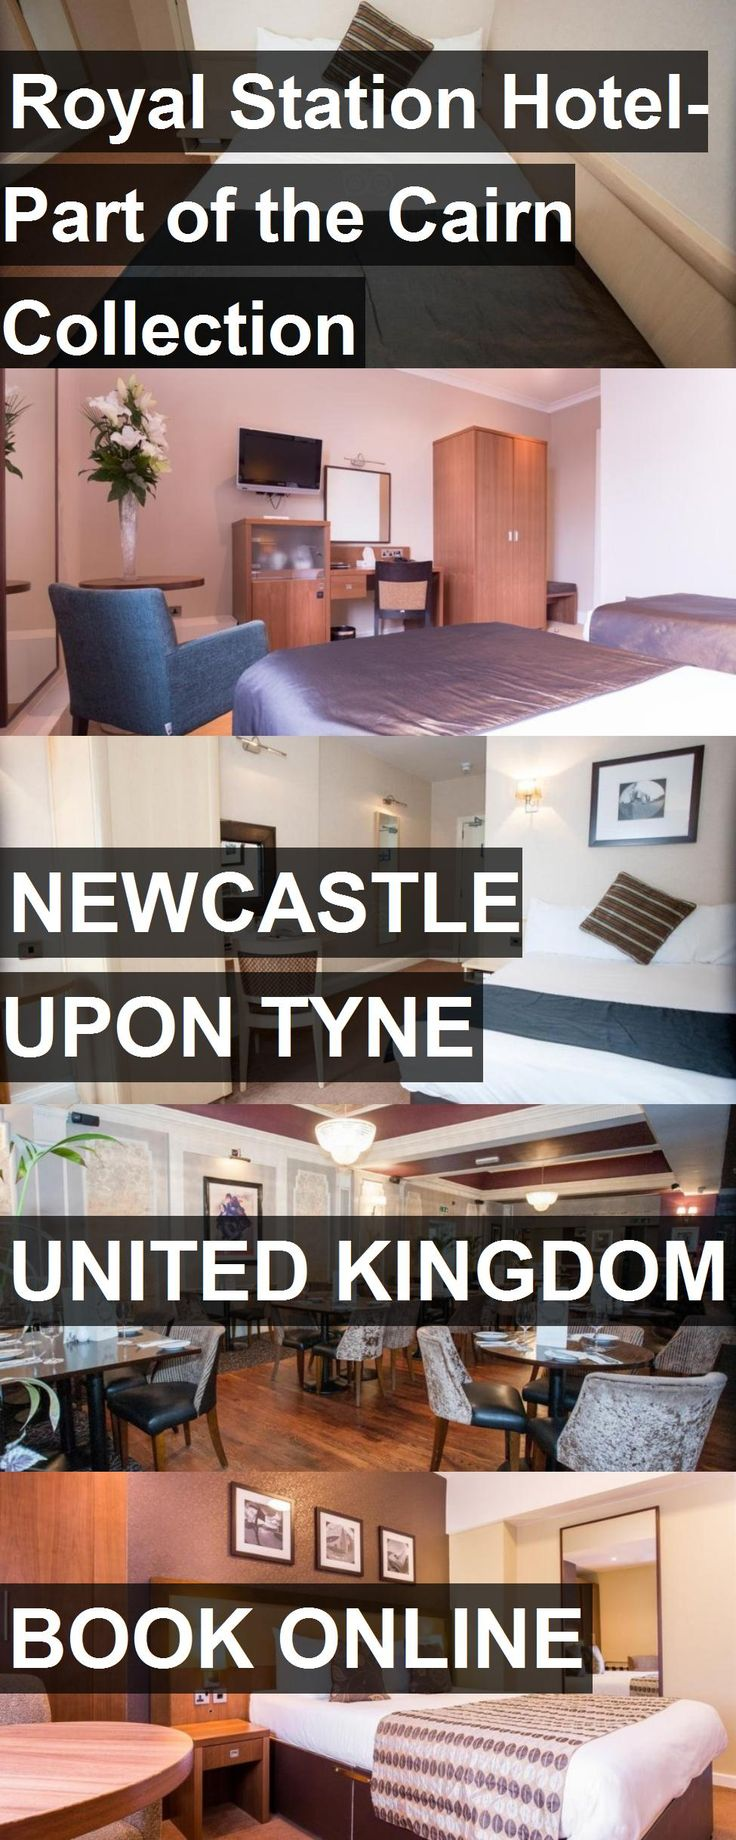 Royal Station Hotel- Part of the Cairn Collection in Newcastle upon Tyne, United Kingdom. For more information, photos, reviews and best prices please follow the link. #UnitedKingdom #NewcastleuponTyne #travel #vacation #hotel